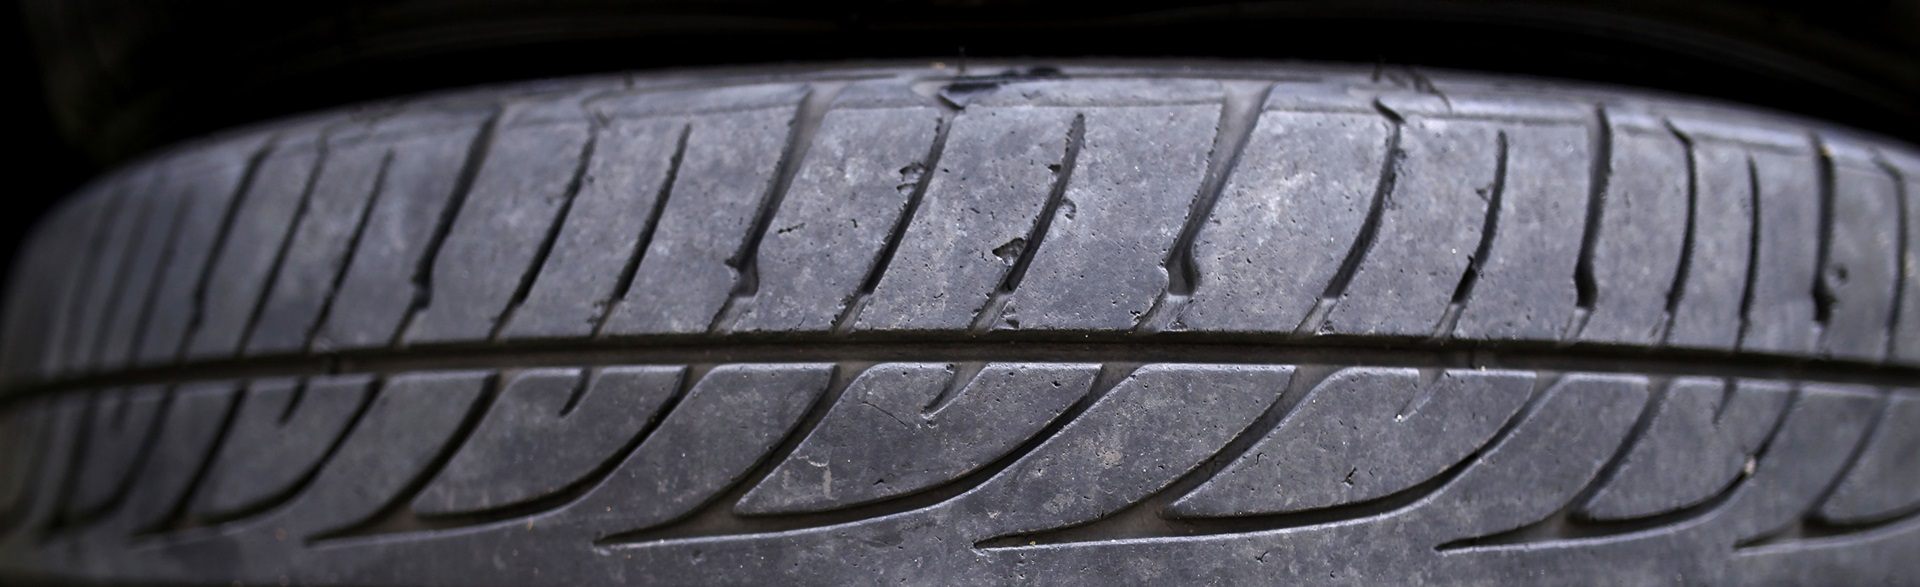 A close up of a worn tire tread